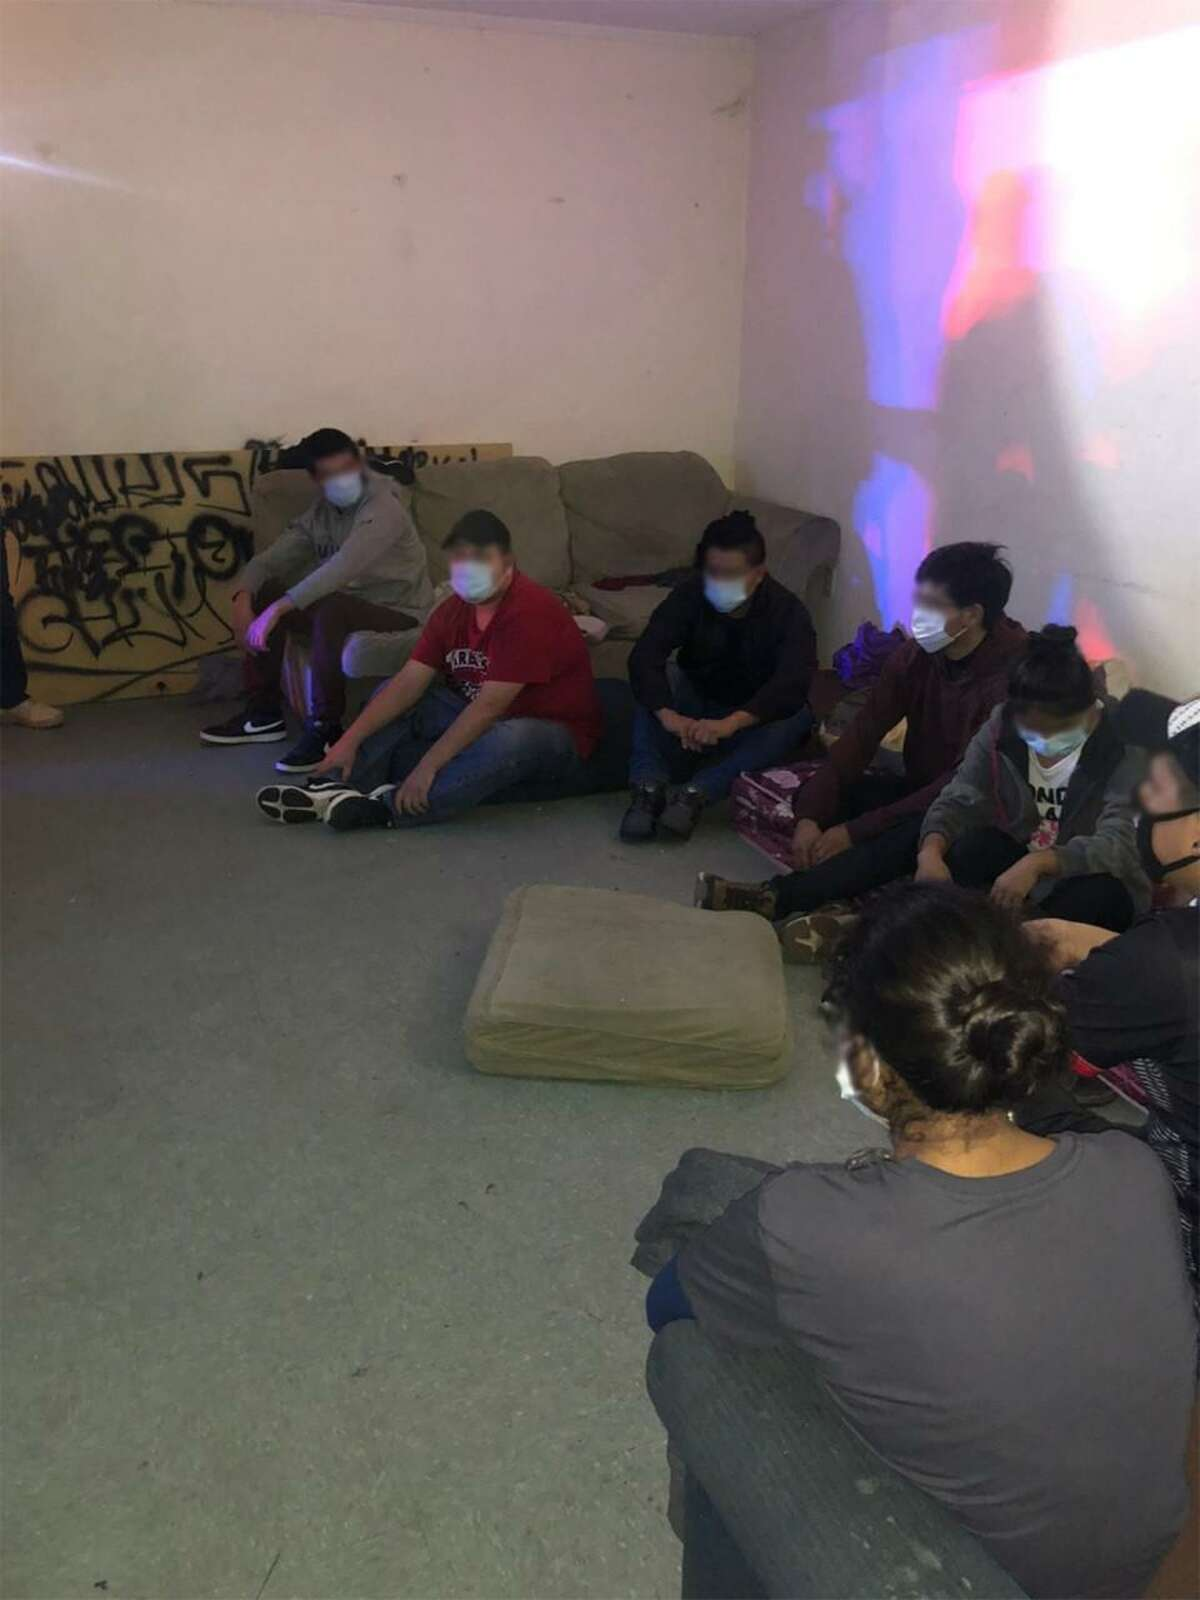 Federal authorities said they discovered 10 immigrants from the countries of Ecuador and Mexico inside a home on East Lyon Street.